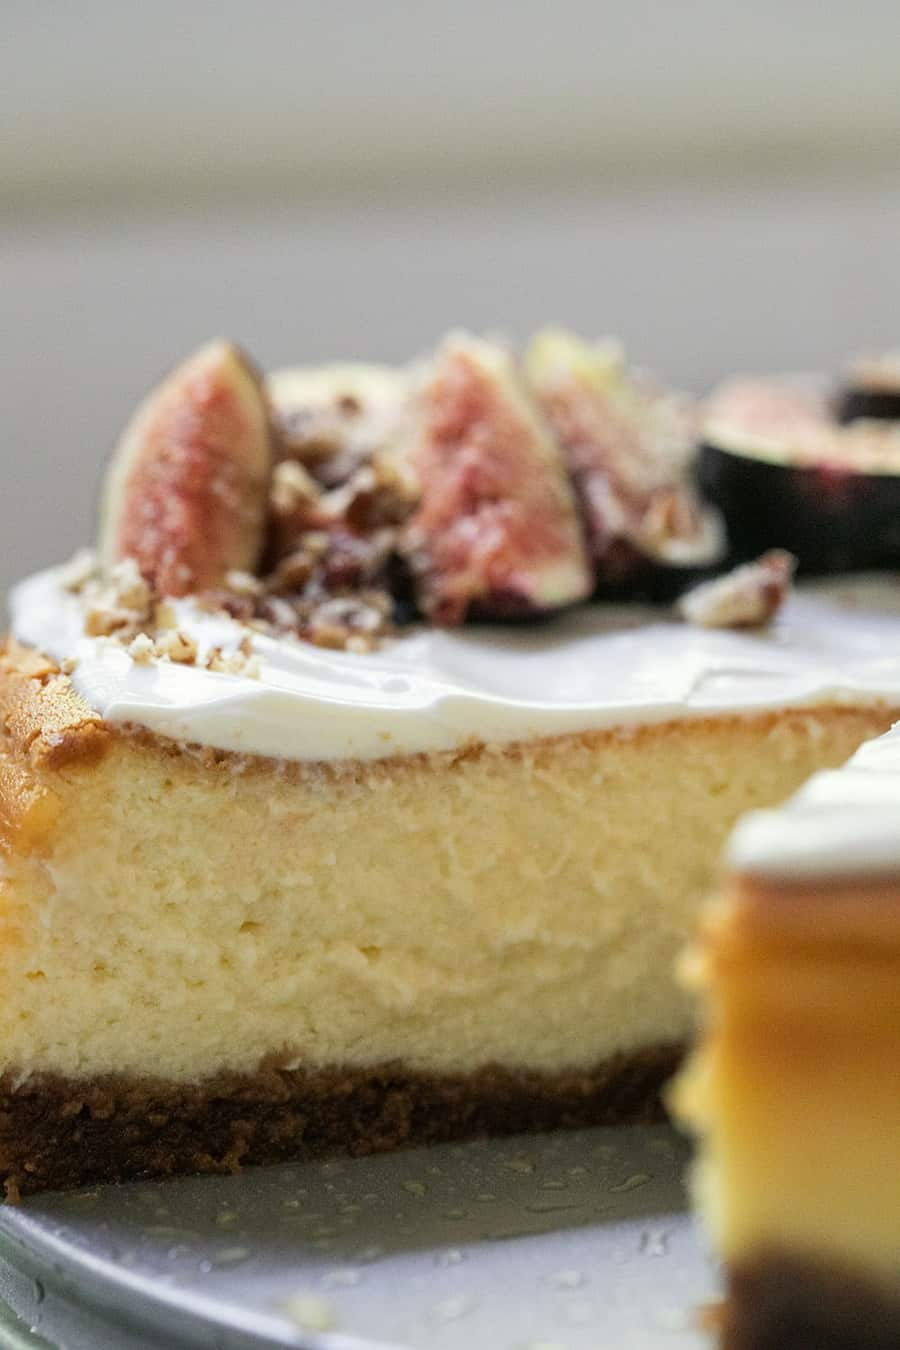 Cheesecake with sour cream frosting and figs